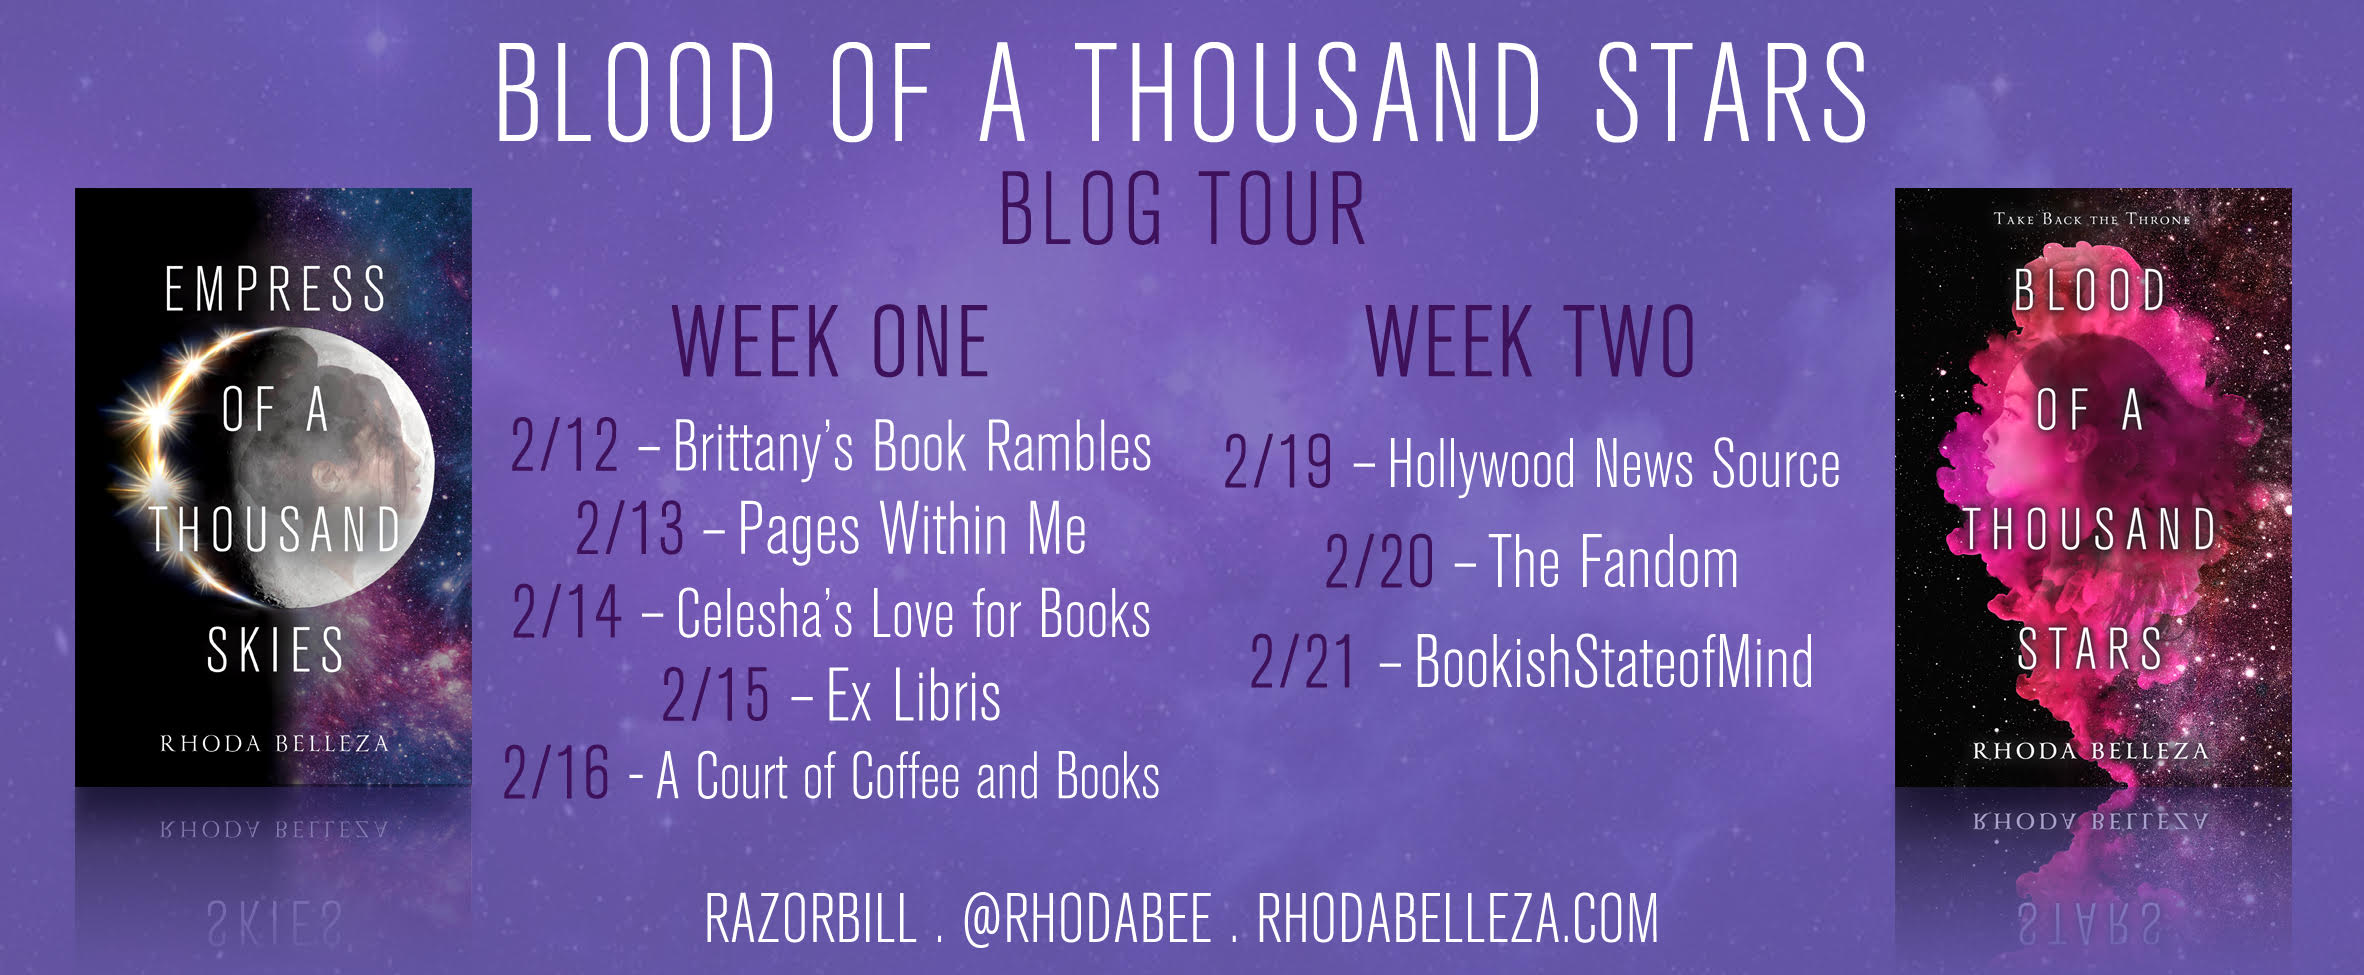 Blog Tour: Blood Of A Thousand Stars